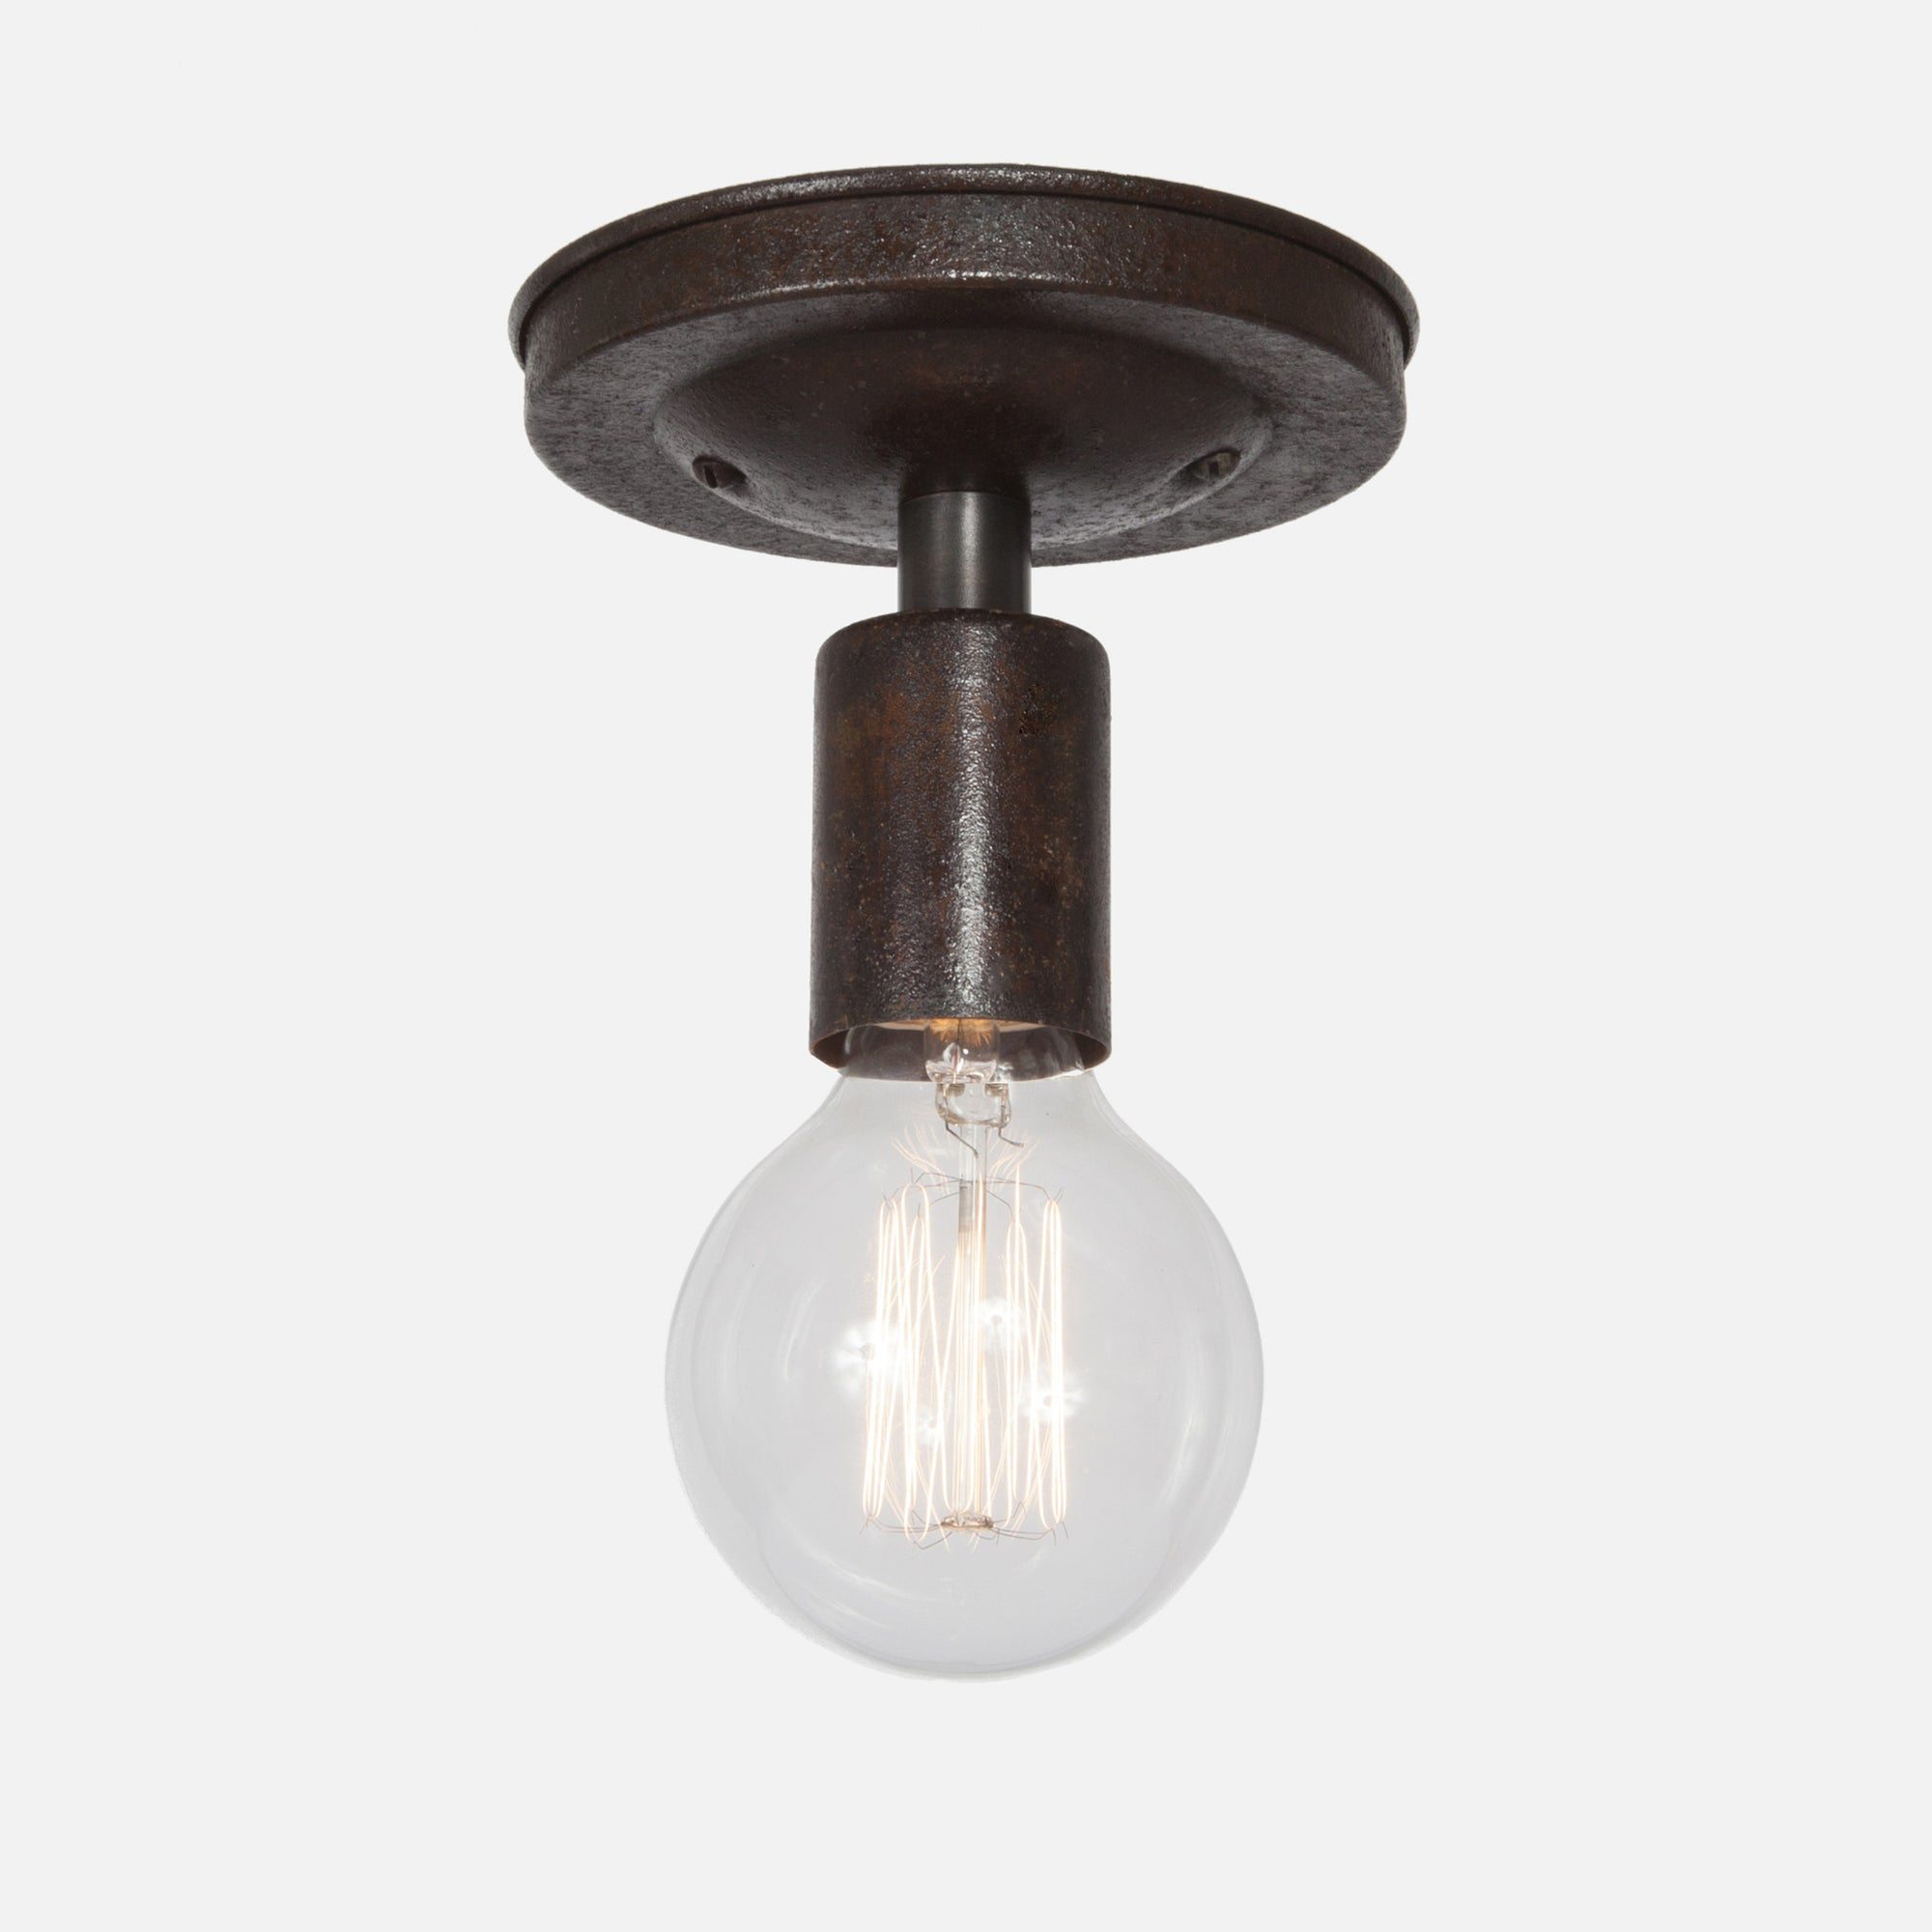 Bare Bulb Ceiling Light